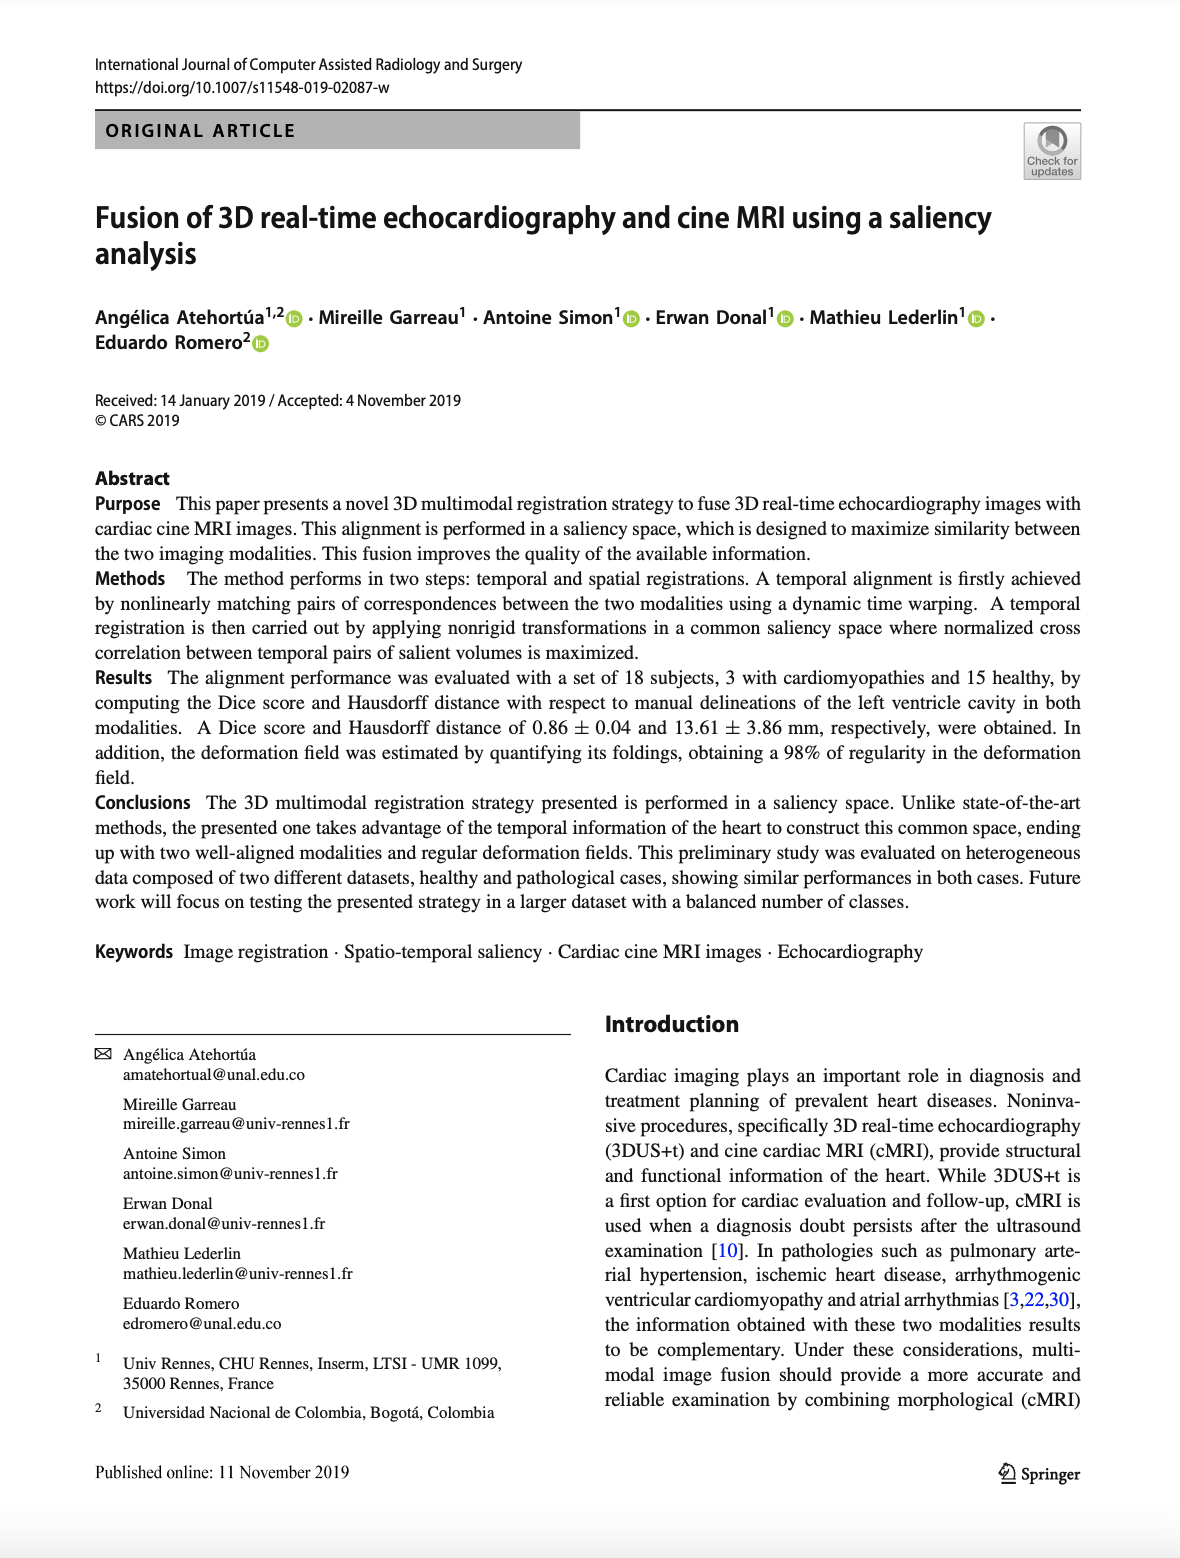 Fusion of 3D real-time Echocardiography and cine MRI using a Saliency Analysis